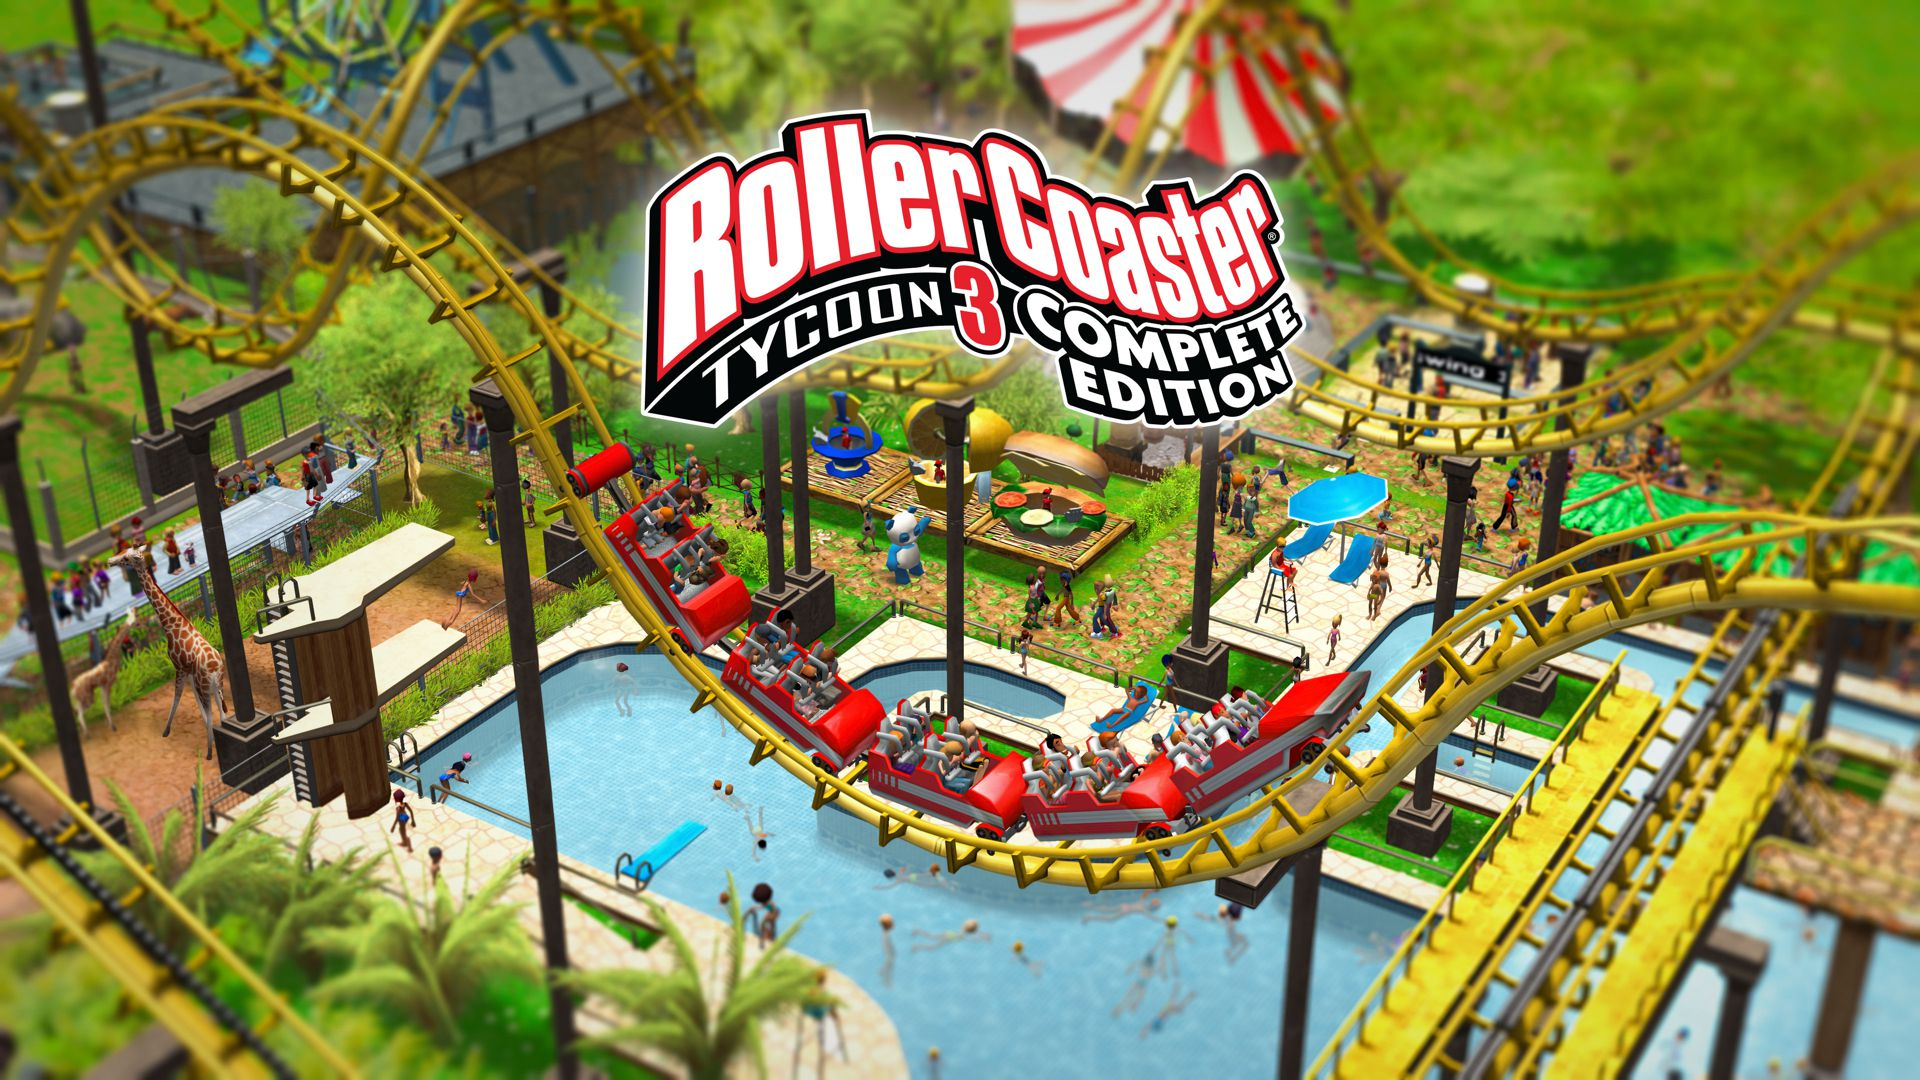 RollerCoaster Tycoon 3 Complete Edition Principal